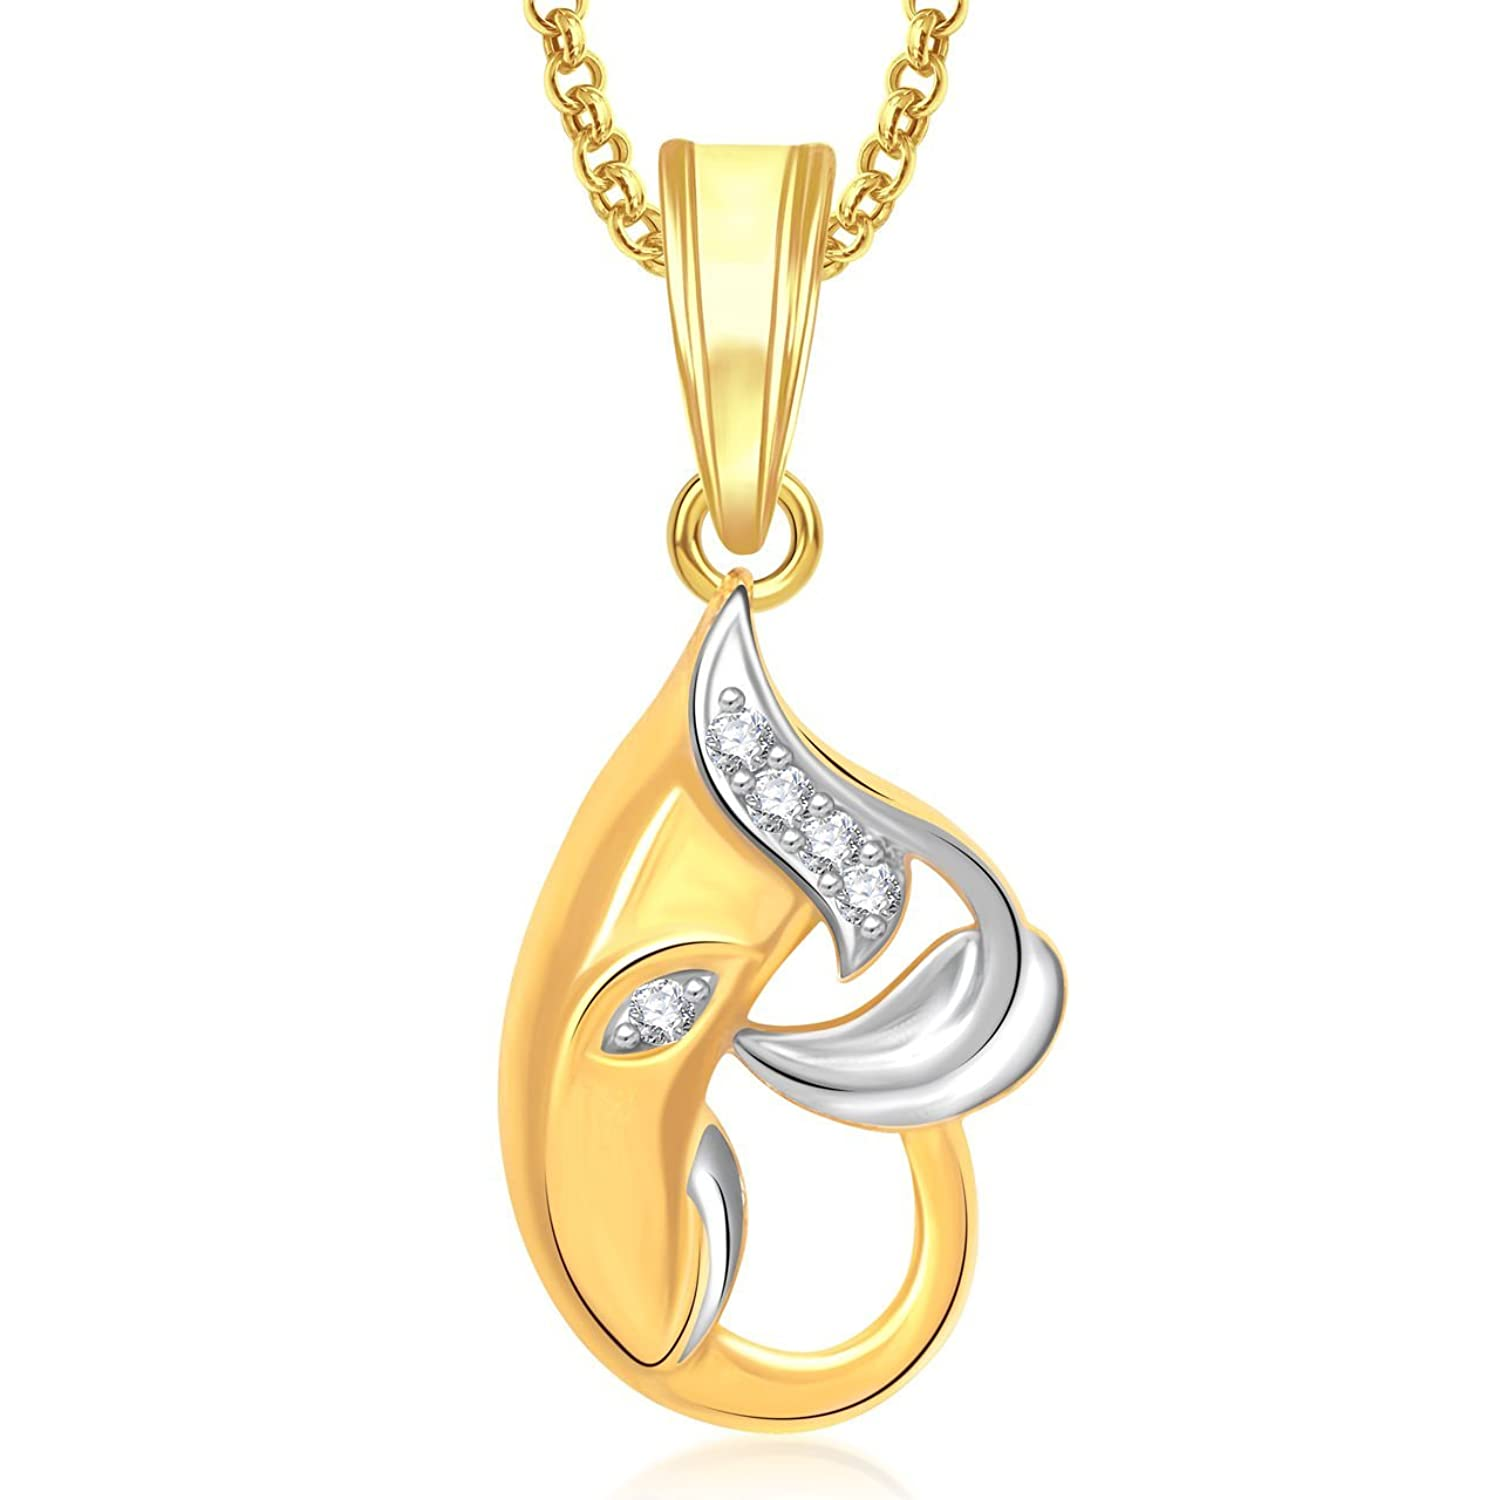 low store lockets pendant jewellery india pendants om amazon women gold at plated in dp buy cz diamond meenaz online prices men american for necklace